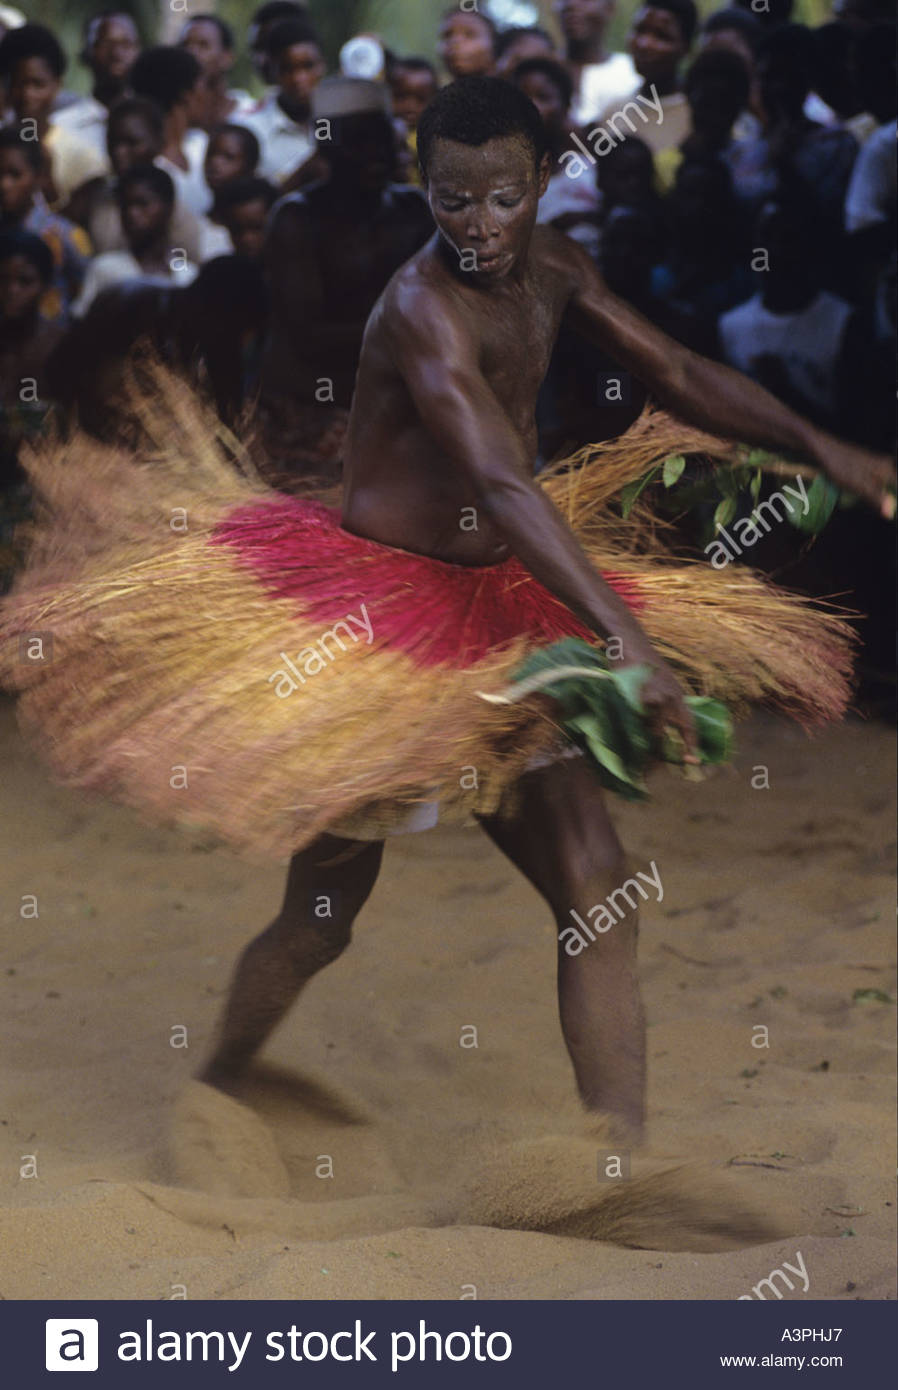 Voodoo dancer covered in Palm oil and sand spins his way into a trance at Kokuzahn festival - Stock Image